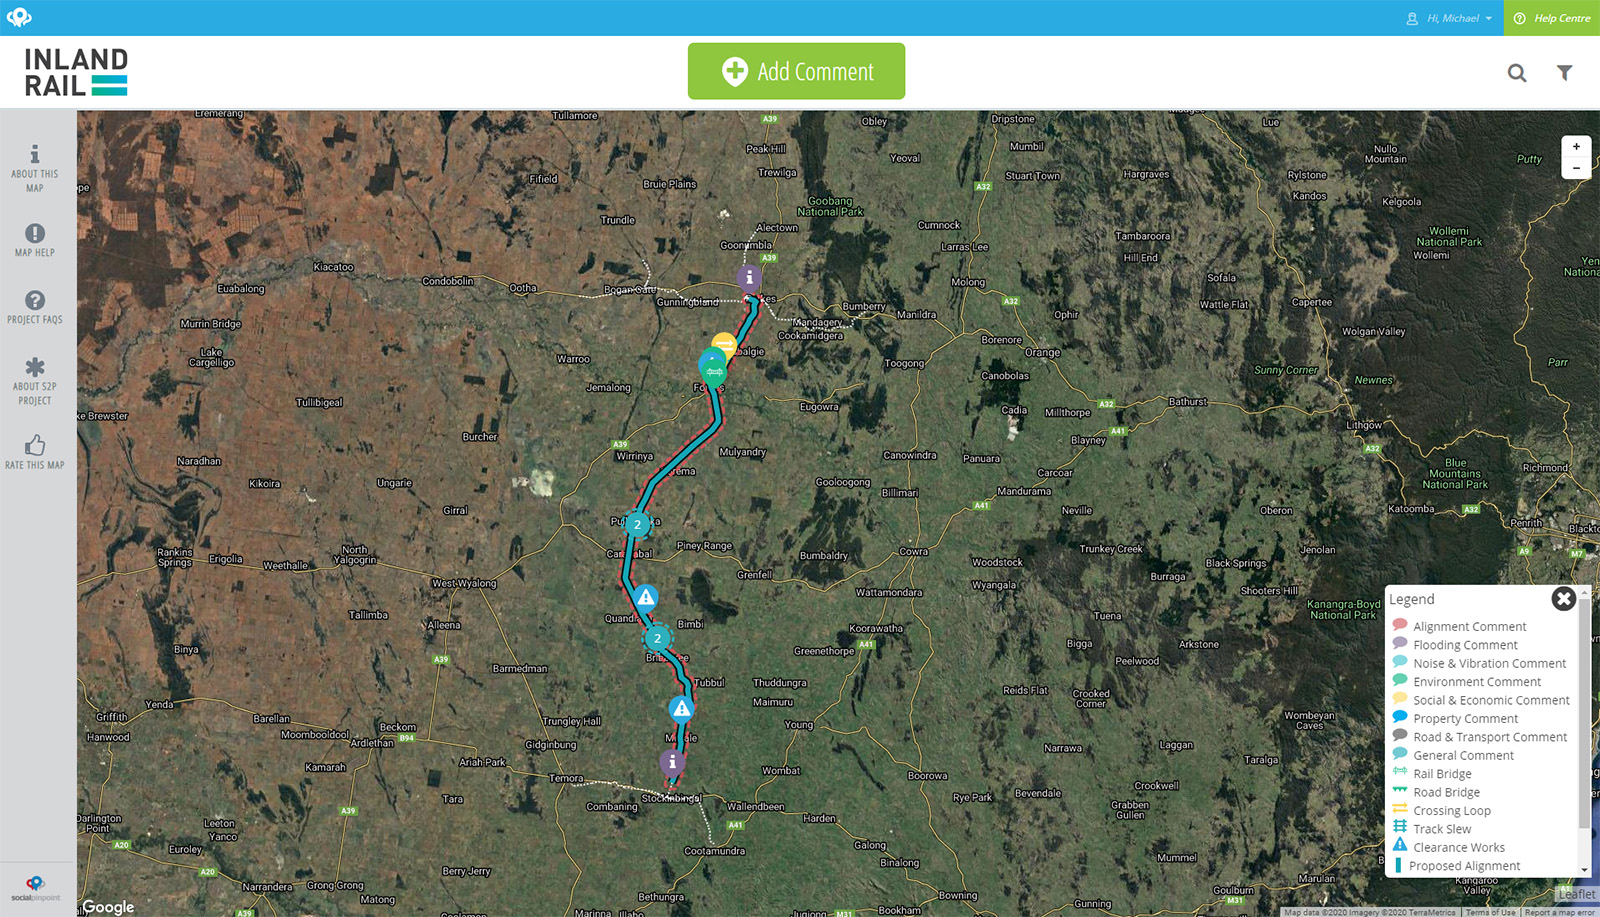 Stockinbingal to Parkes project interactive map